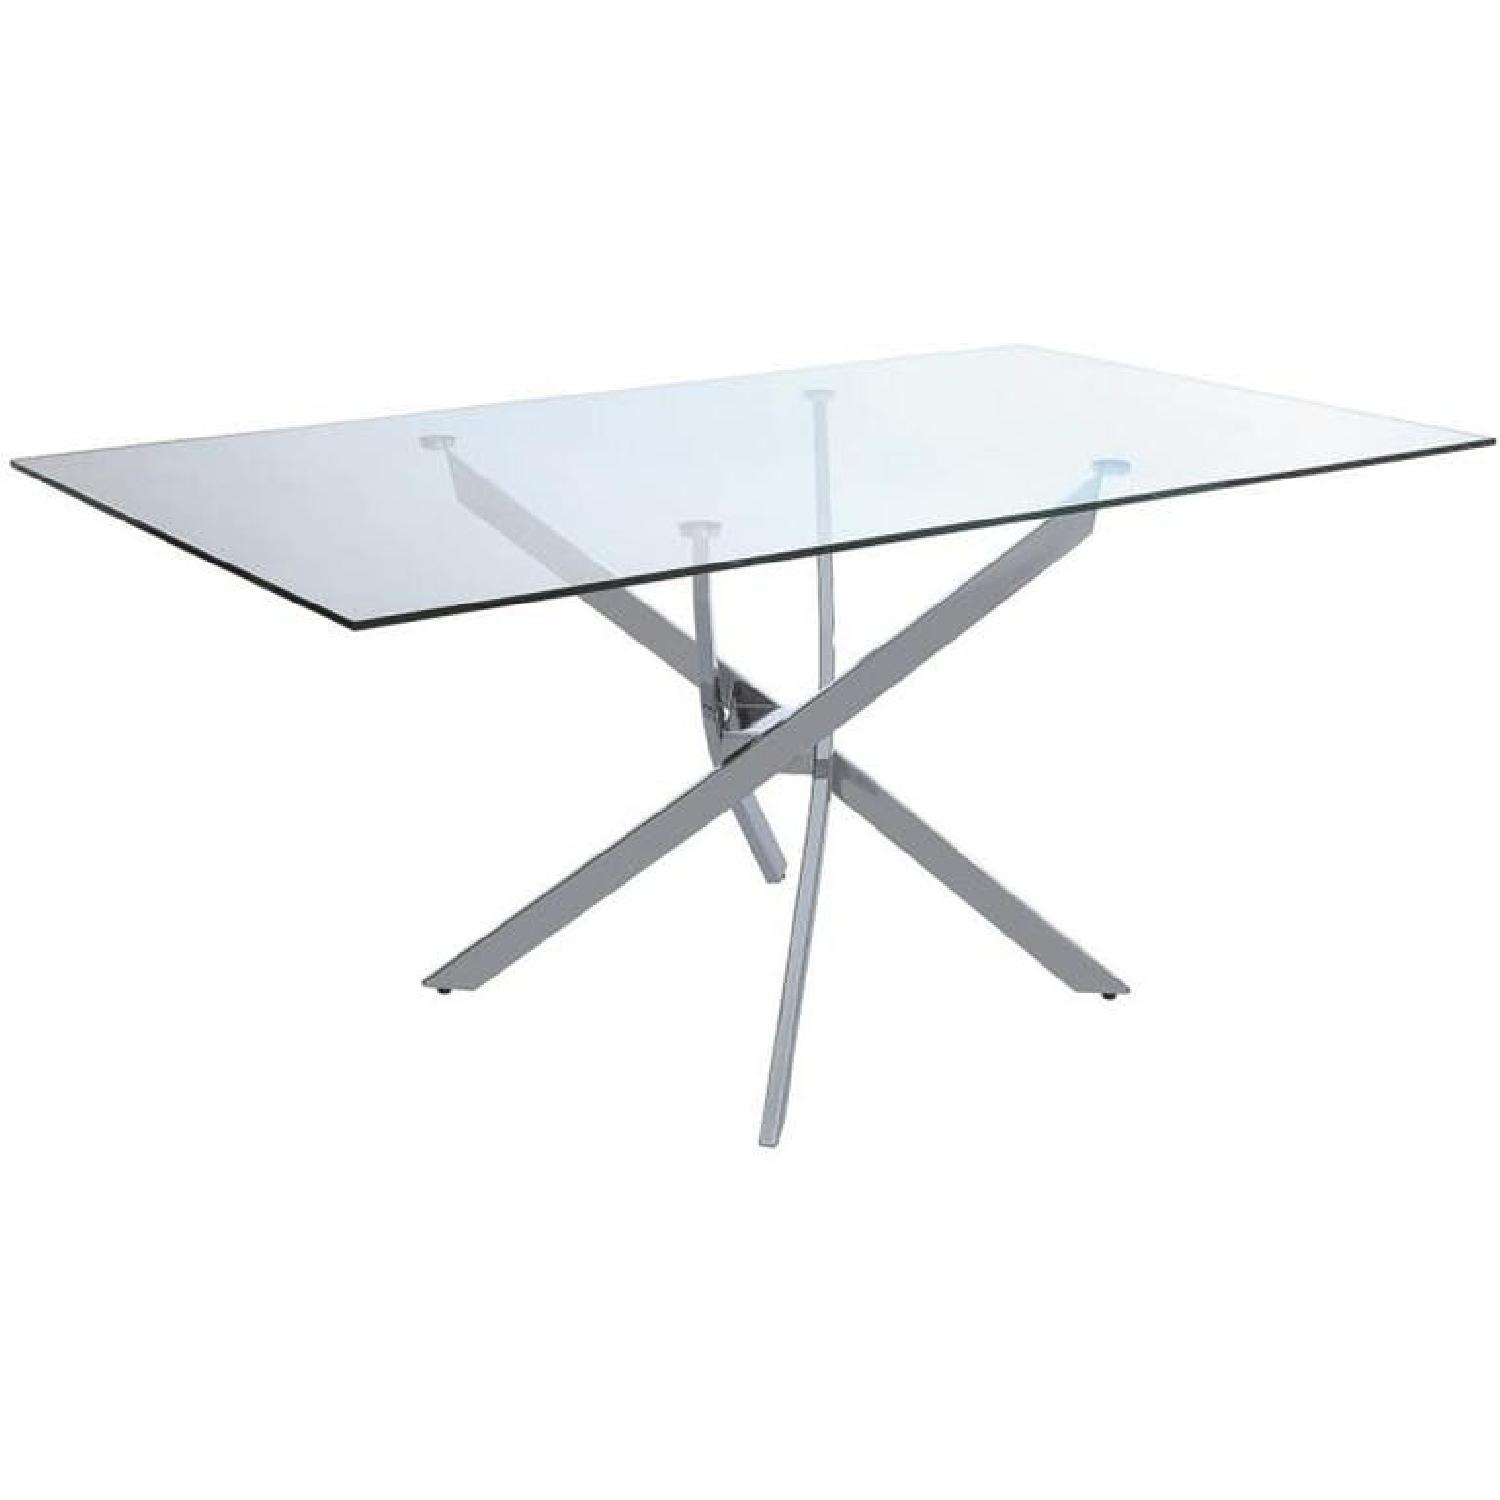 Contemporary Dining Table w/ Chrome Base & Glass Top